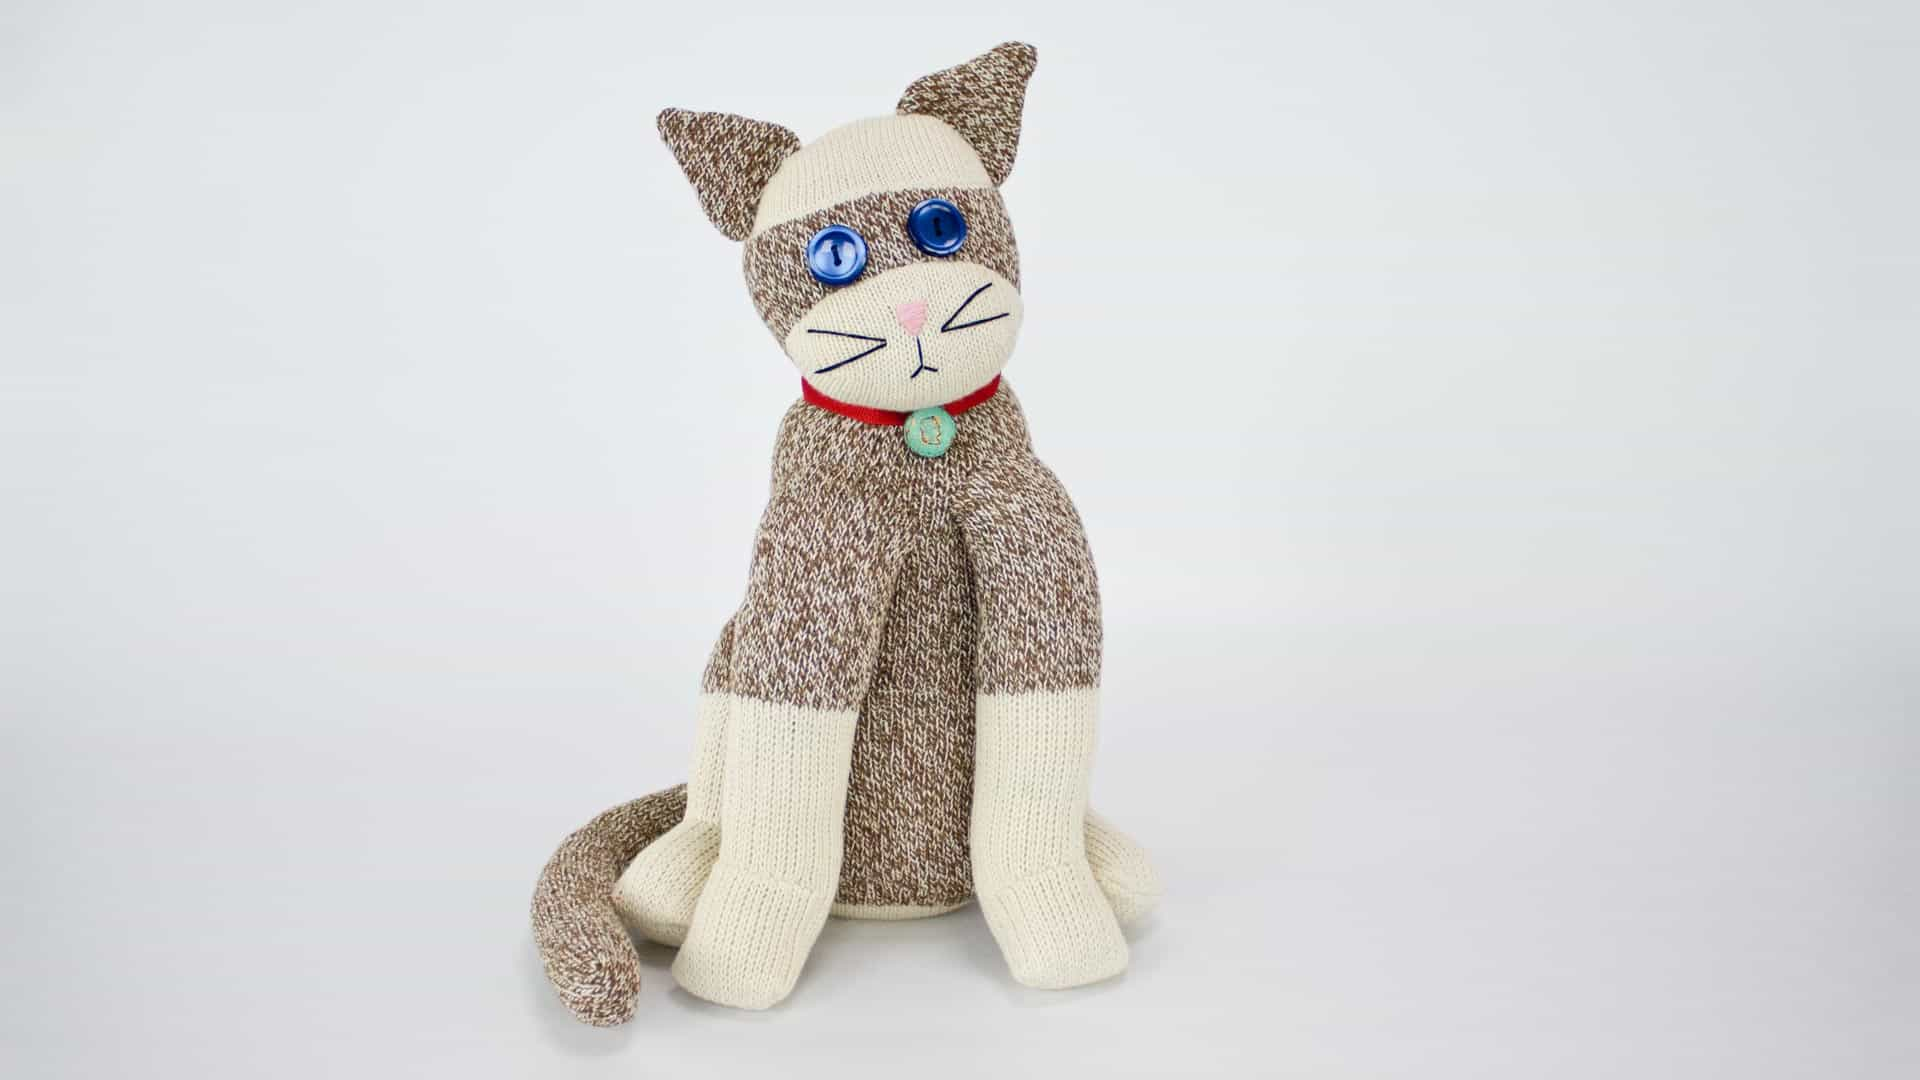 cat stuffed animal made from white and tweed socks